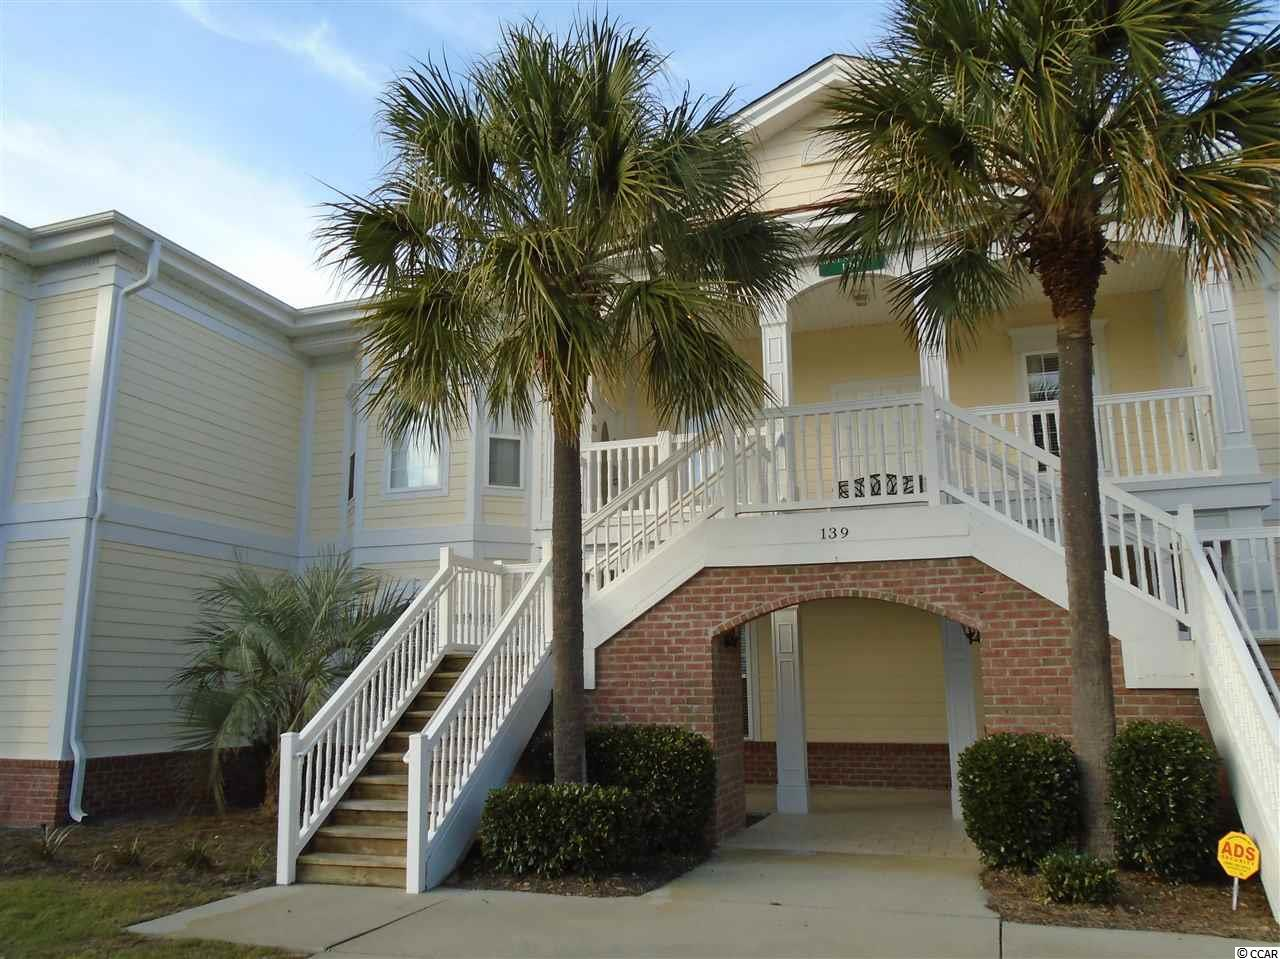 Nicely and completely furnished Green Haven - only upstairs, corner villa on the market at the present time.  The building is located at the end of Avian Drive with common area on one side; a single family neighborhood is located in the rear camouflaged by Leland Cypress trees; 4 BRs, 3 Baths (1850 heated sq.ft.) with lockout availability; additional features include a screen porch and detached single car garage; Bike or golf cart ride to your private beach access through LBTS with bike/walking paths, tennis courts, fishing/crabbing docks and ocean front club house; convenient to shopping, restaurants, marina and golf courses; located nearby is famous Brookgreen Gardens; Historic Charleston is 90 minutes to the south and Myrtle Beach is only 45 minutes north.